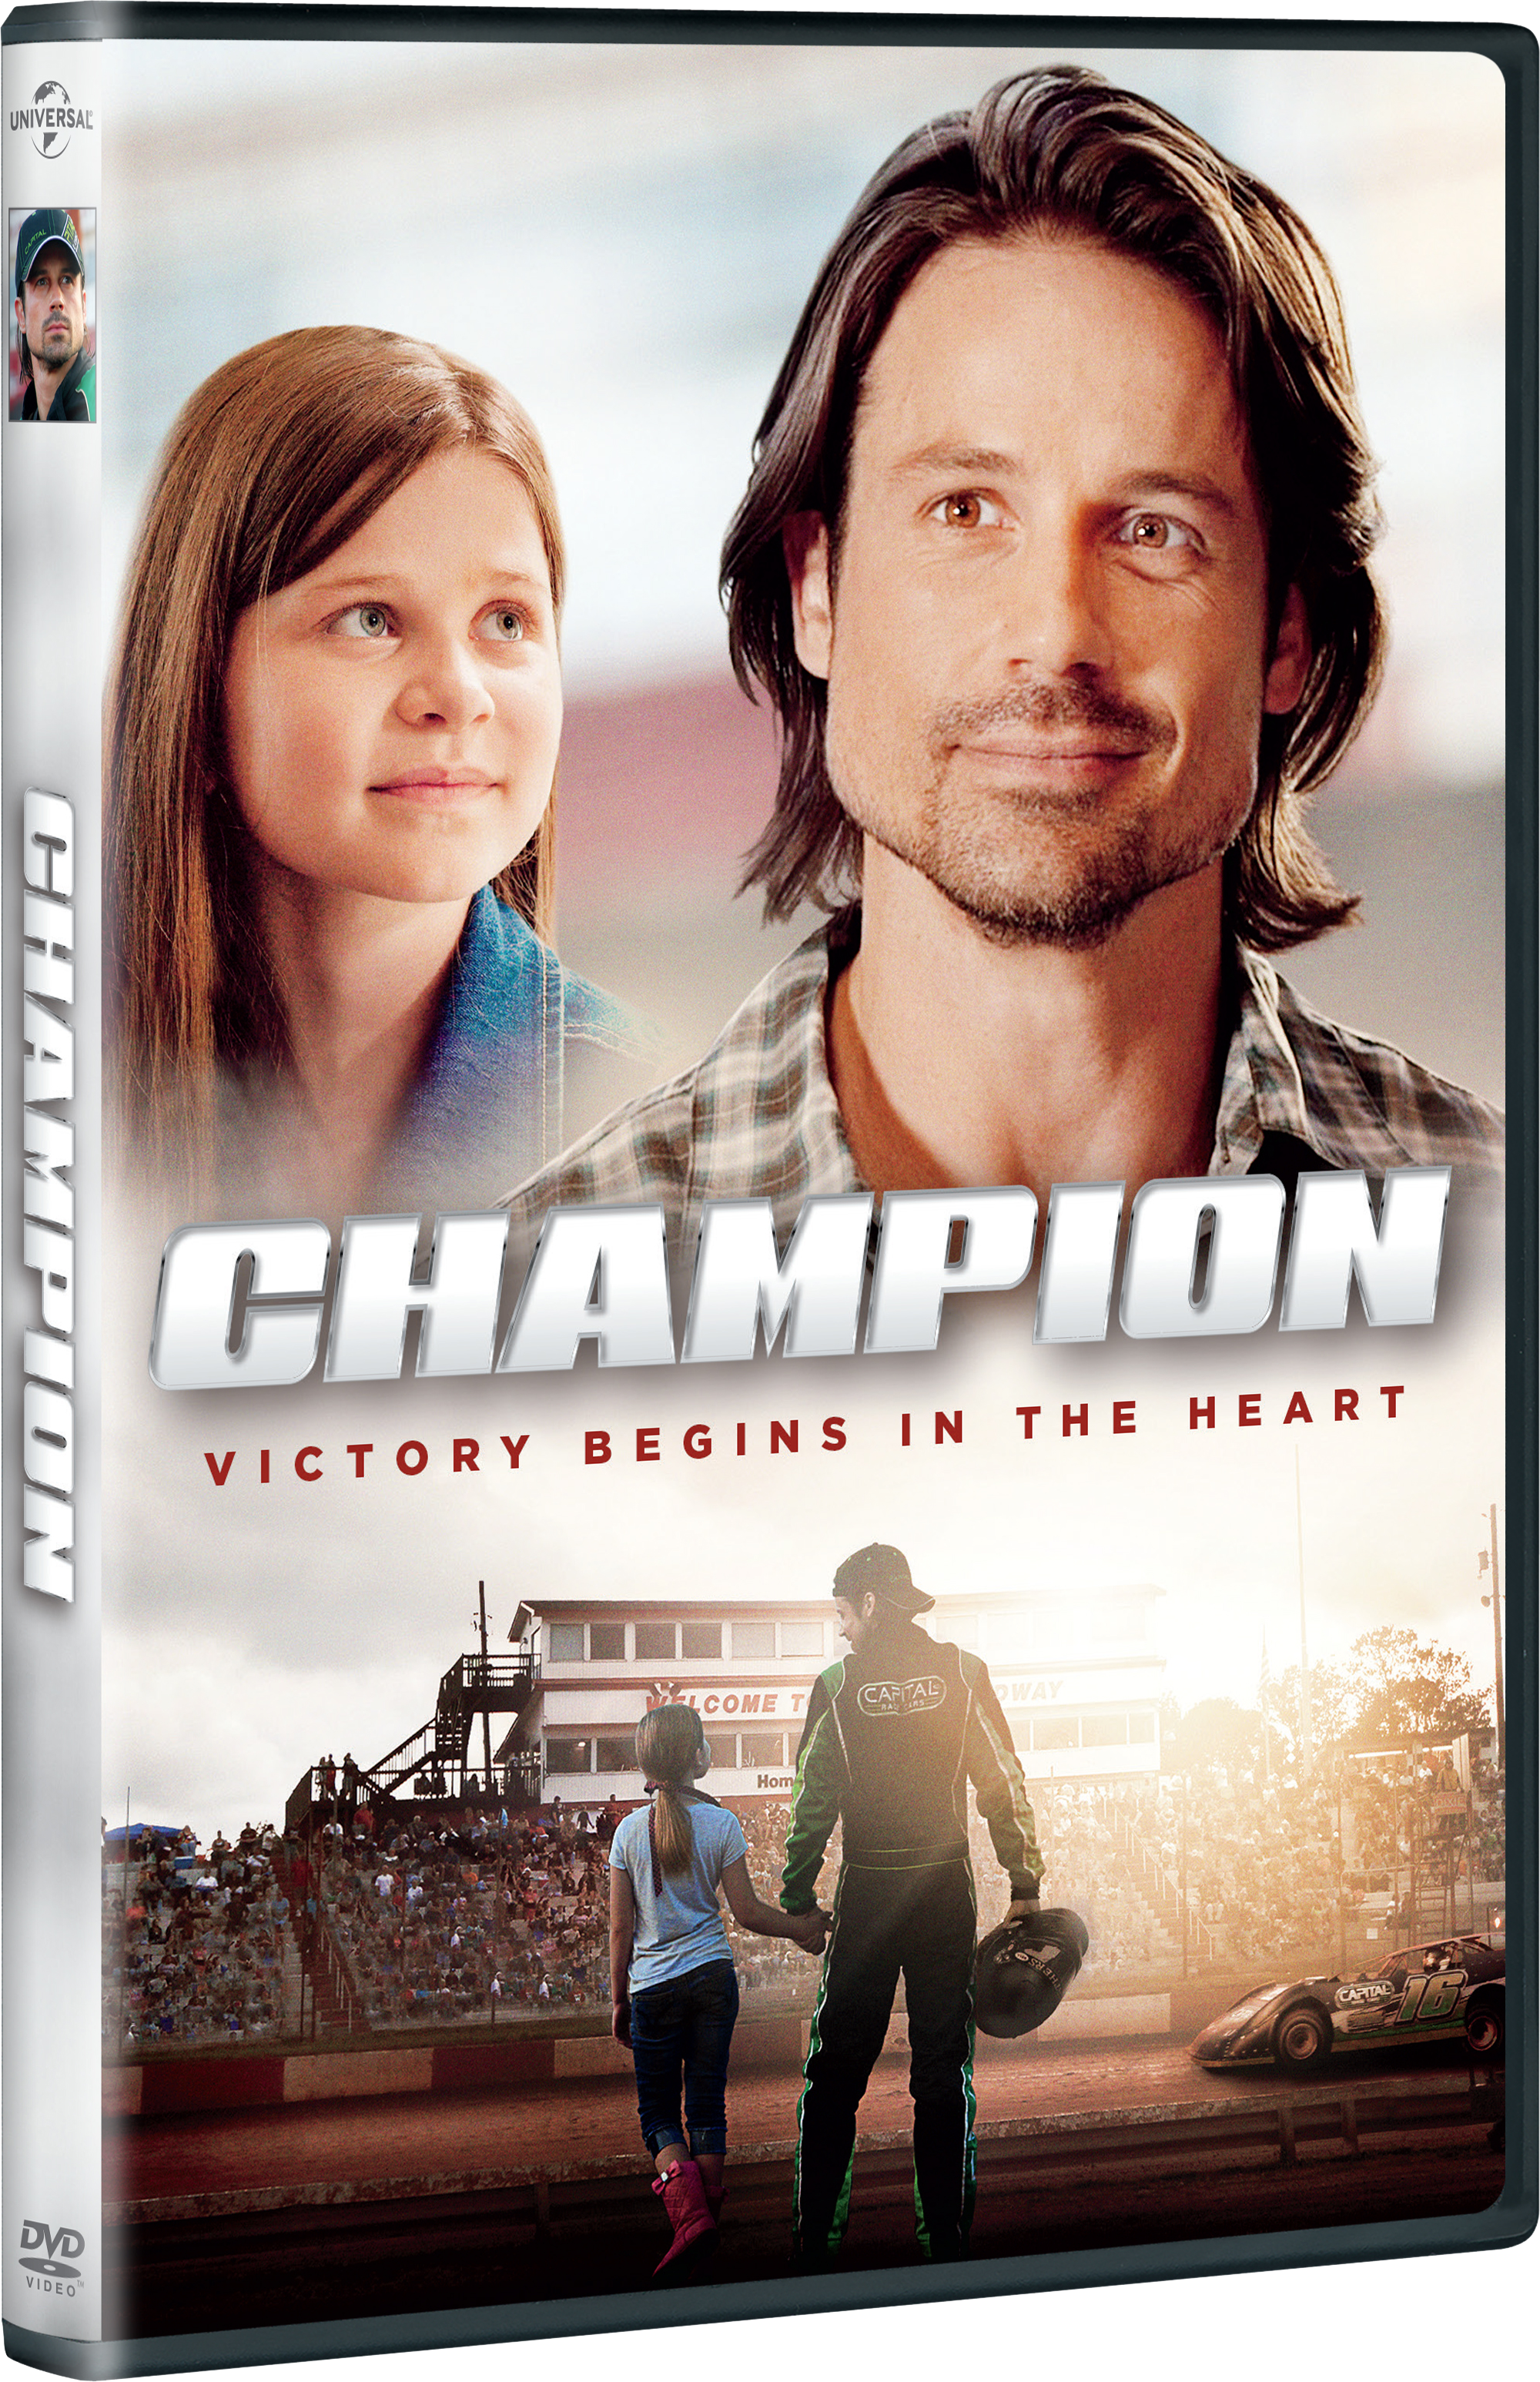 Champion DVD #ChampionMovie